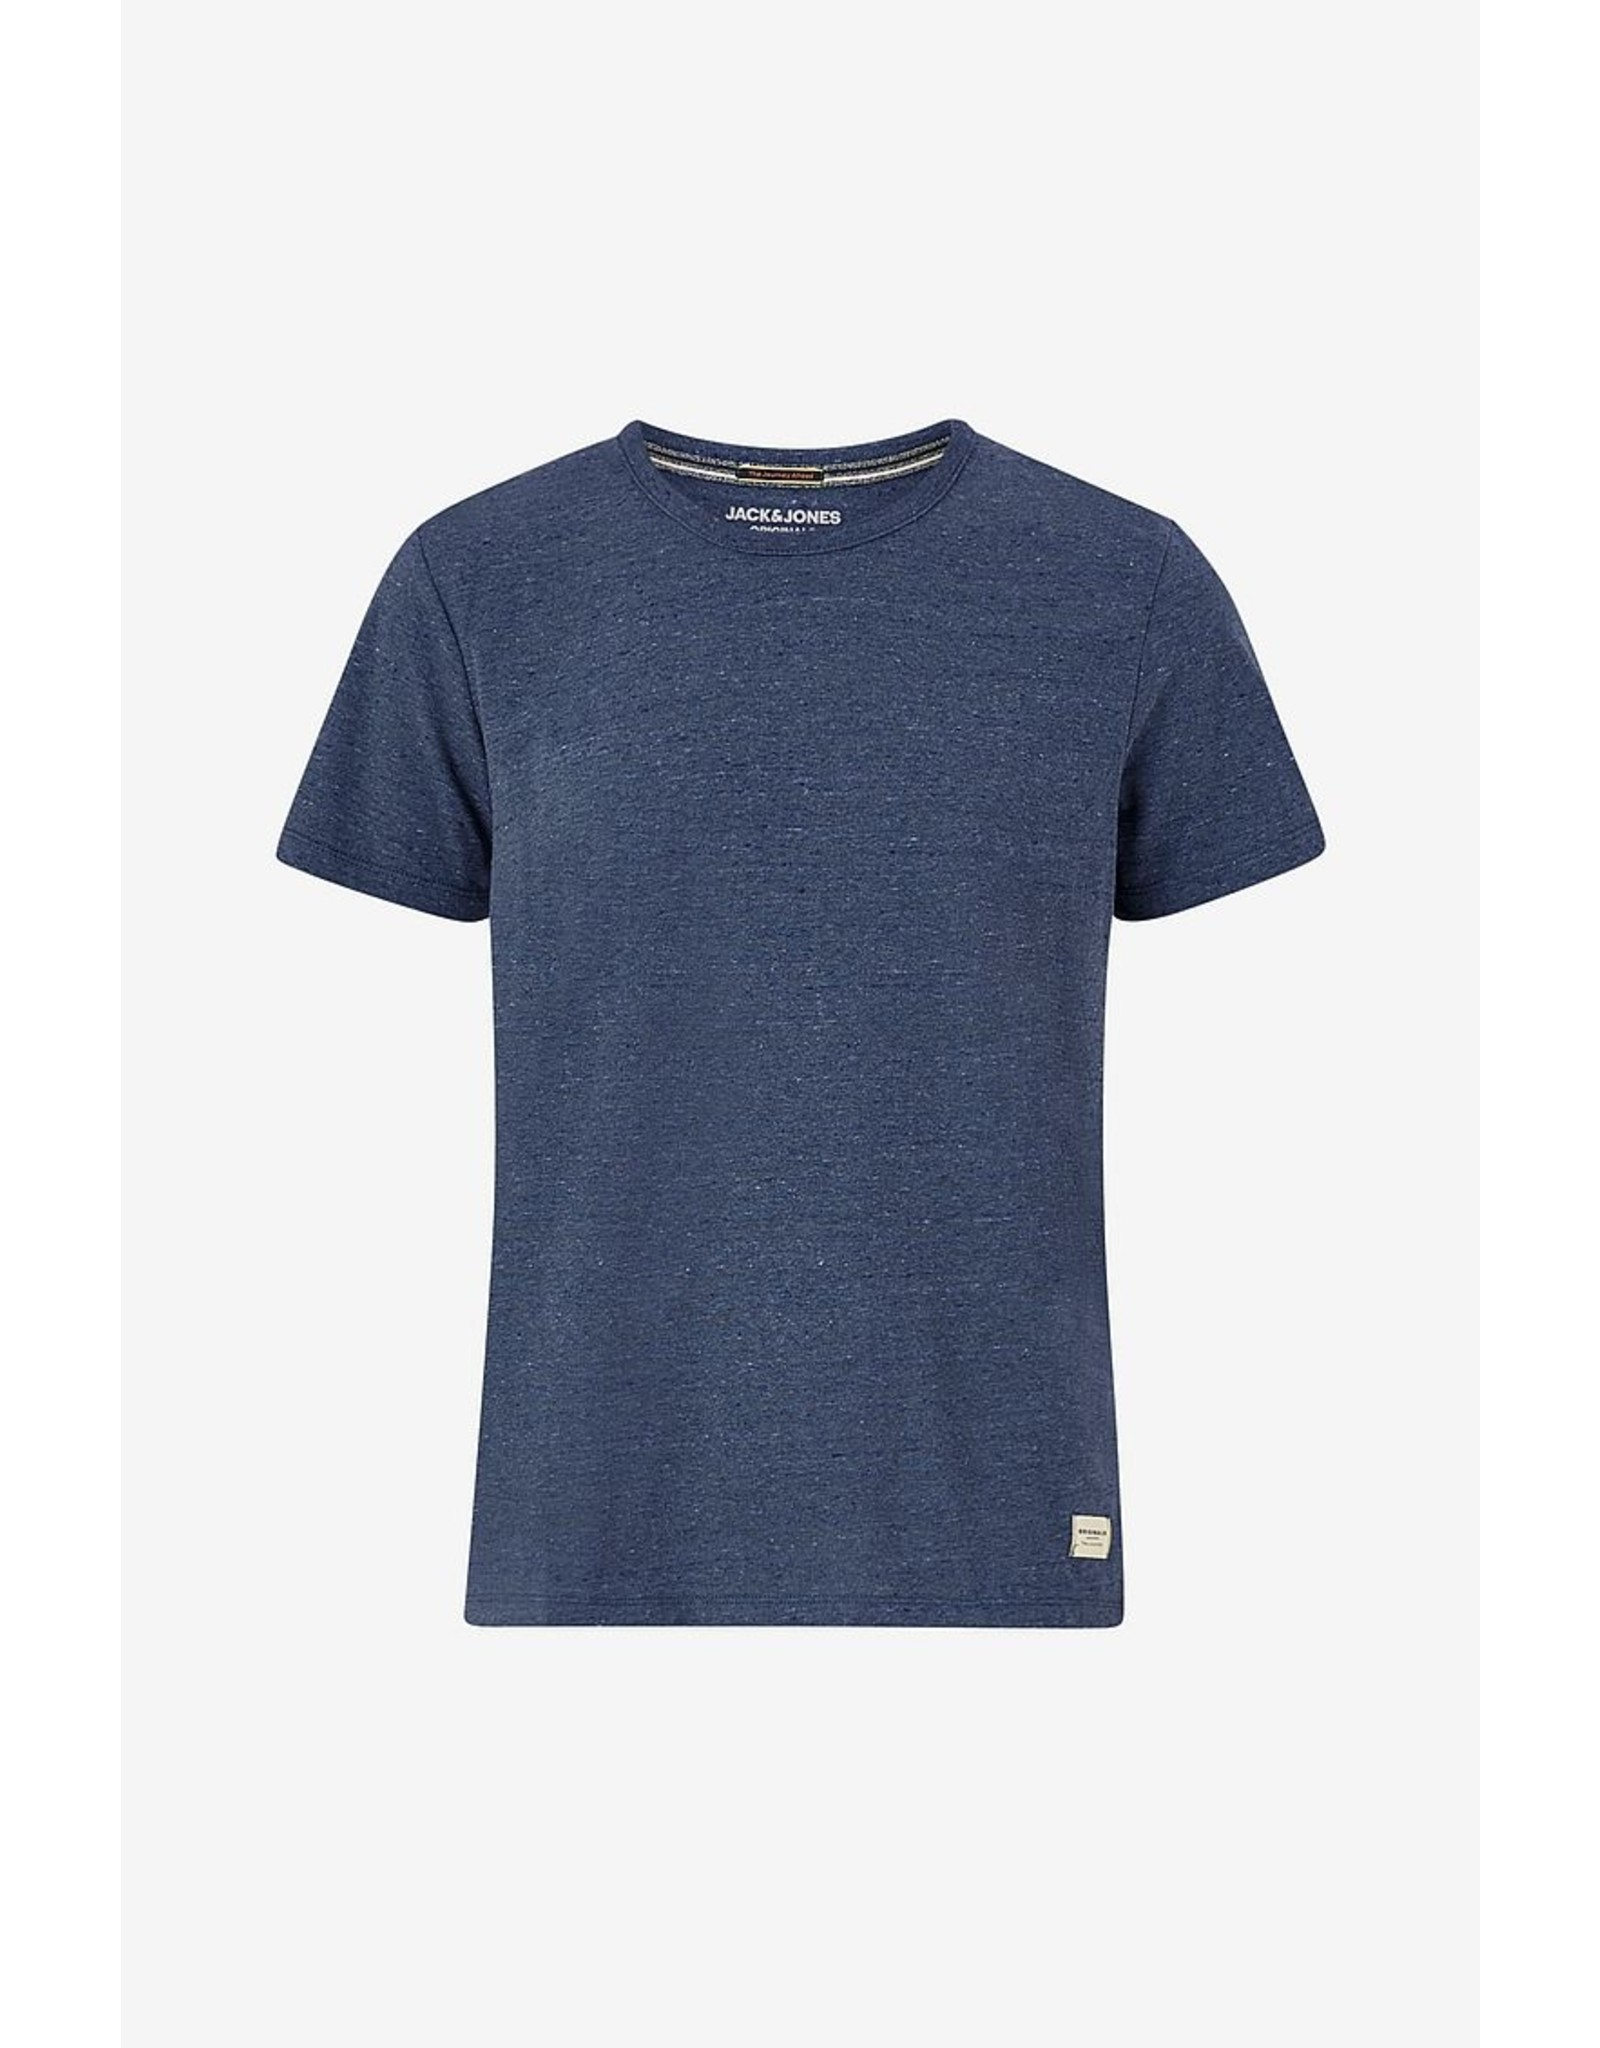 JACK & JONES JACK AND JONES JORWINSTON TEE SS CREW NECK